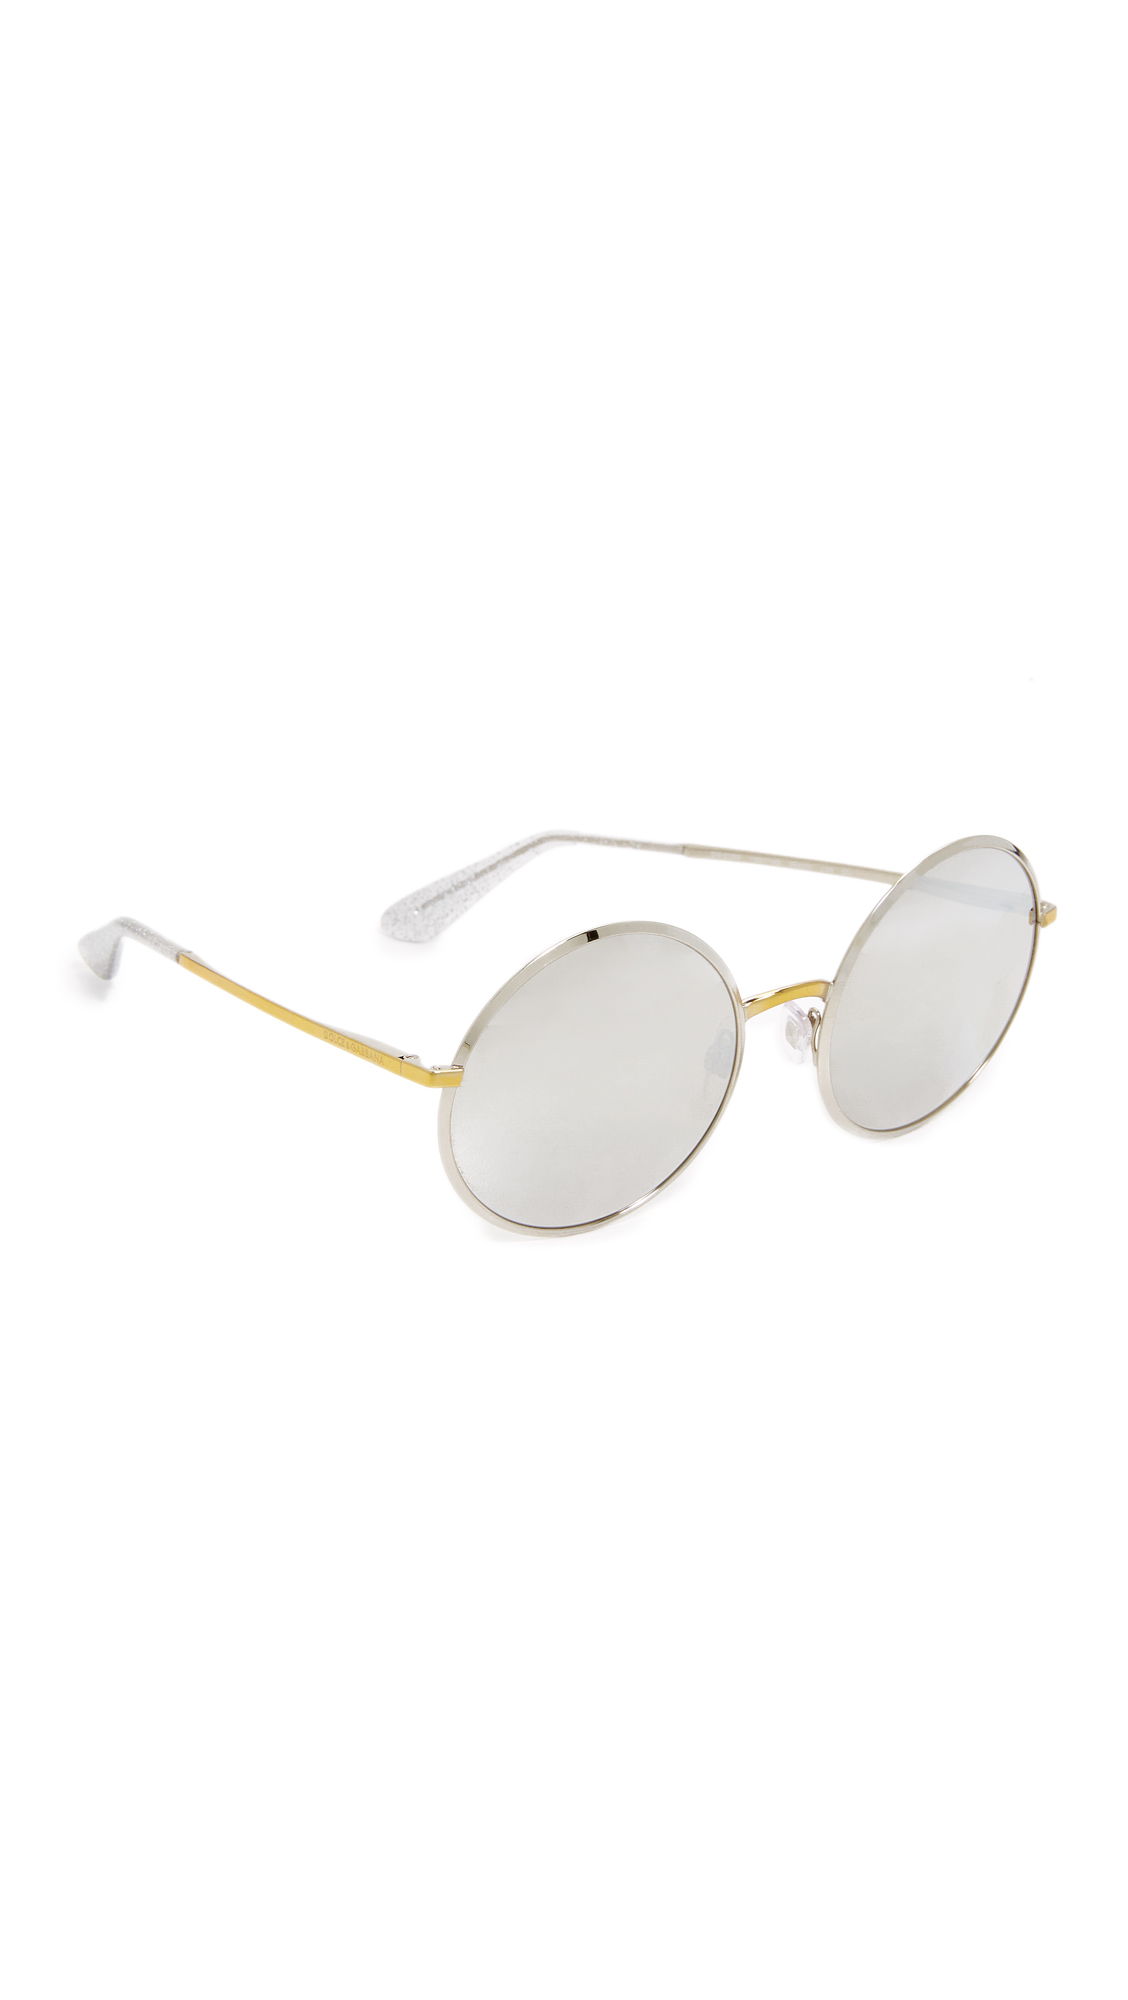 Dolce & Gabbana Round Mirrored Sunglasses - Silver Gold/Gold at Shopbop